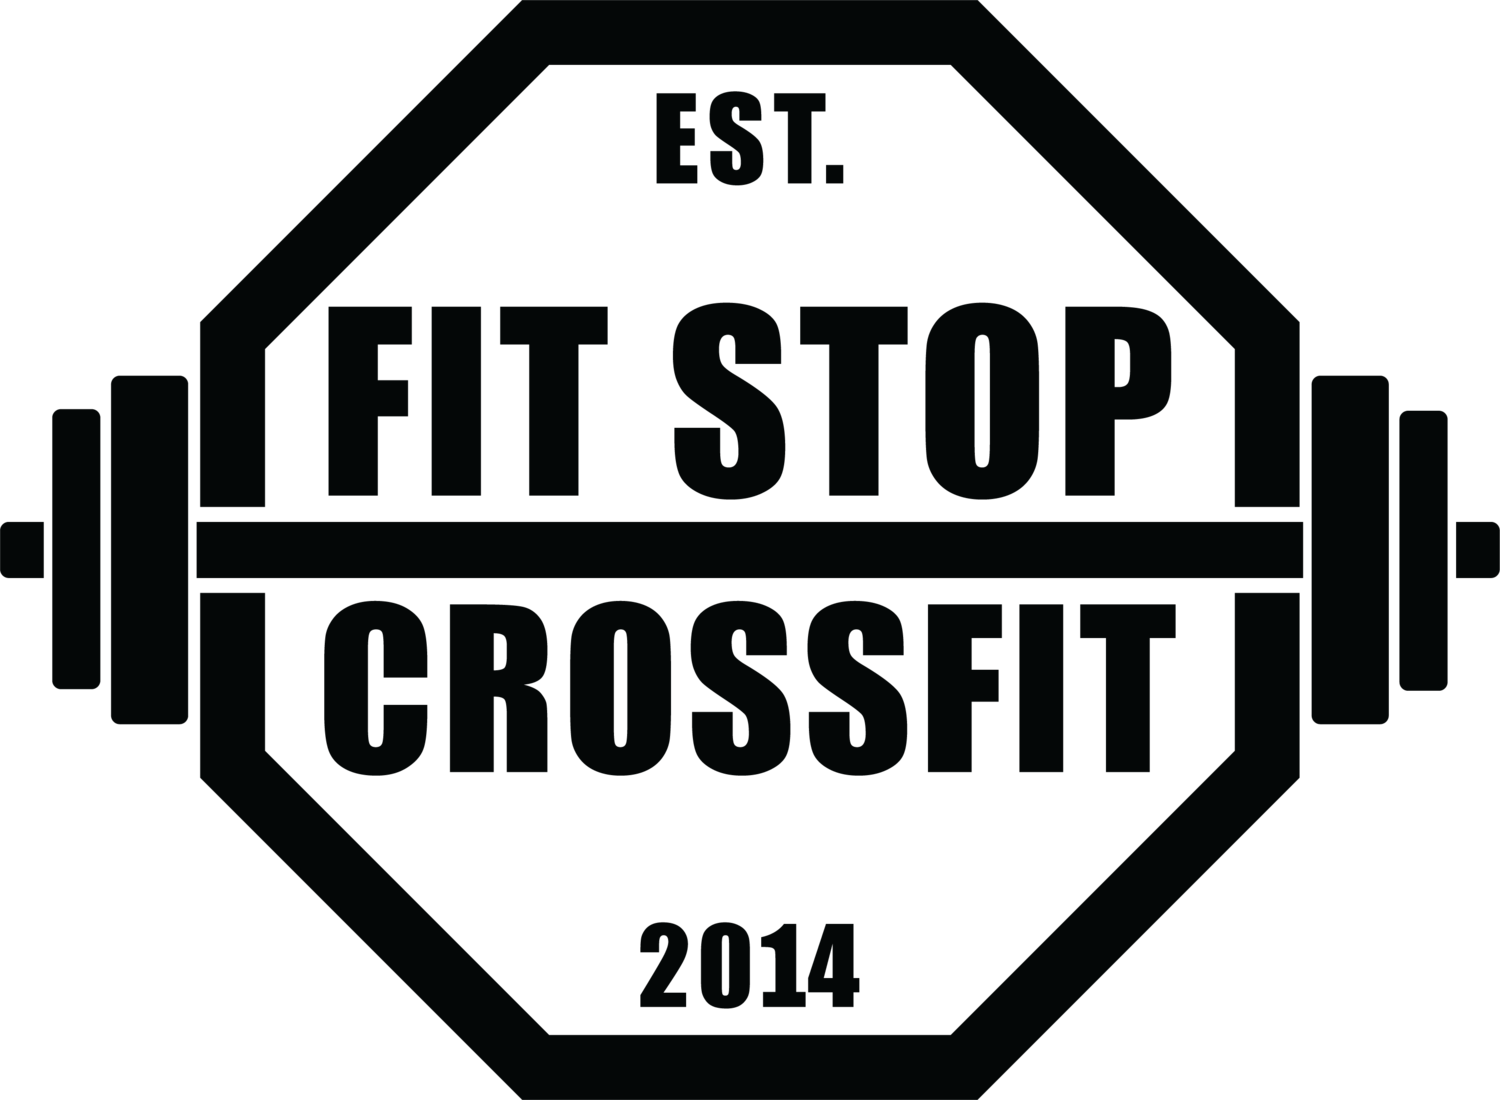 The Fit Stop logo